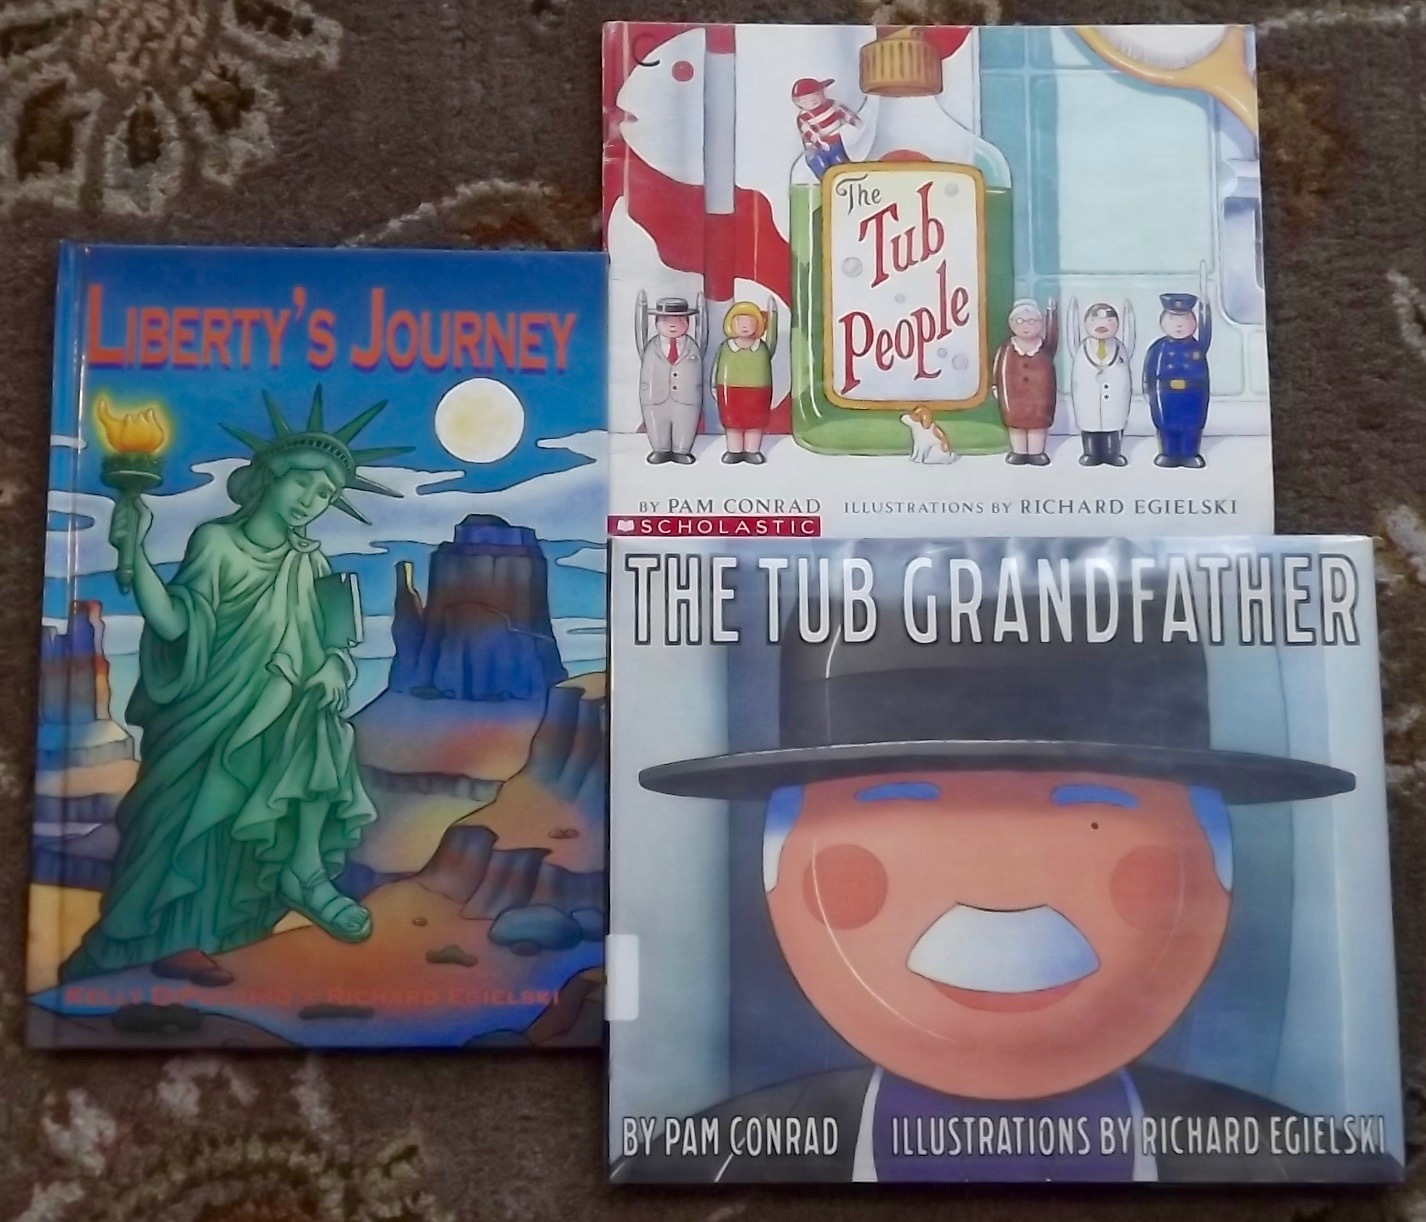 Primary image for 3 Richard Egielski books The Tub People, The Tub Grandfather, Liberty's Journey